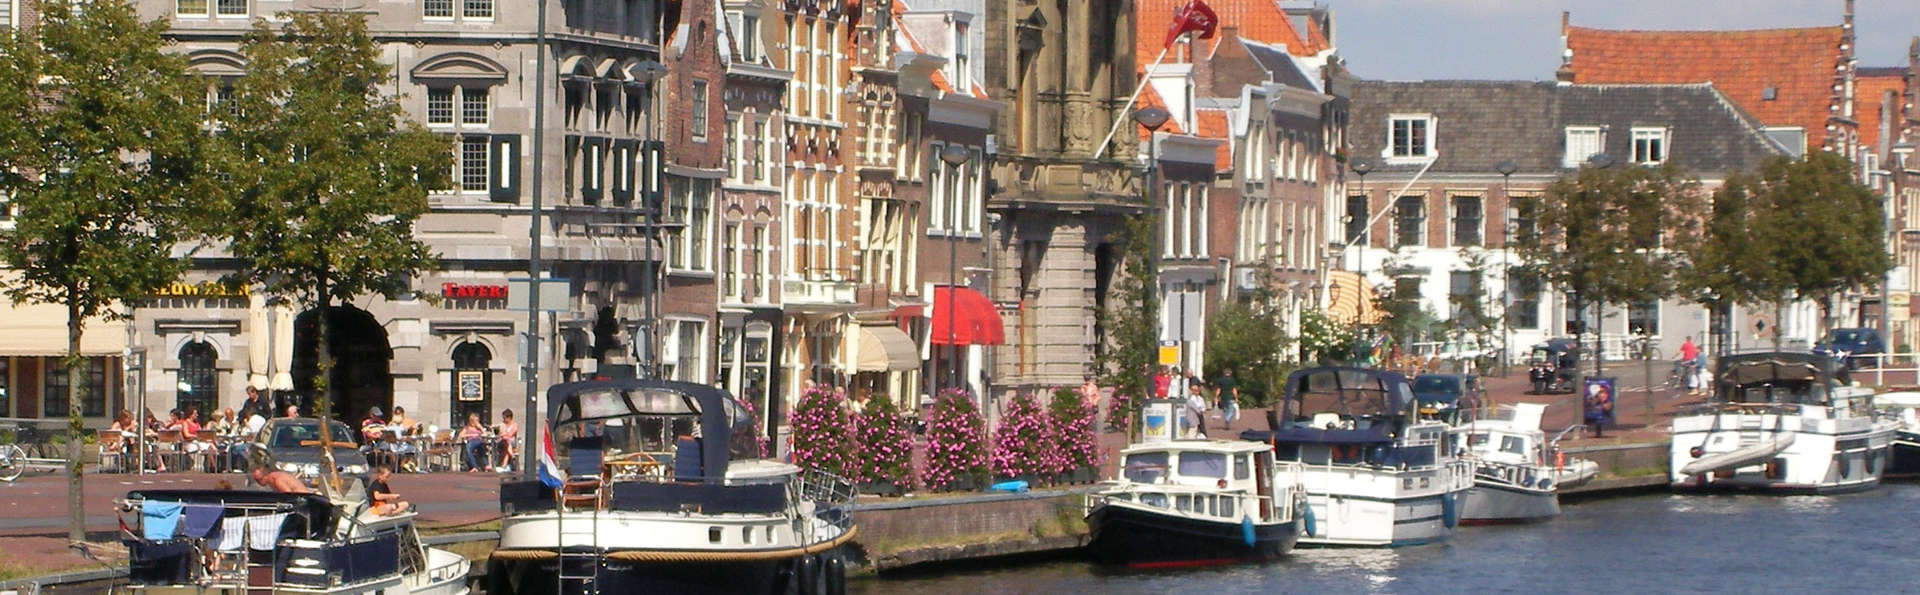 Carlton Square Hotel Haarlem - Edit_Destination3.jpg